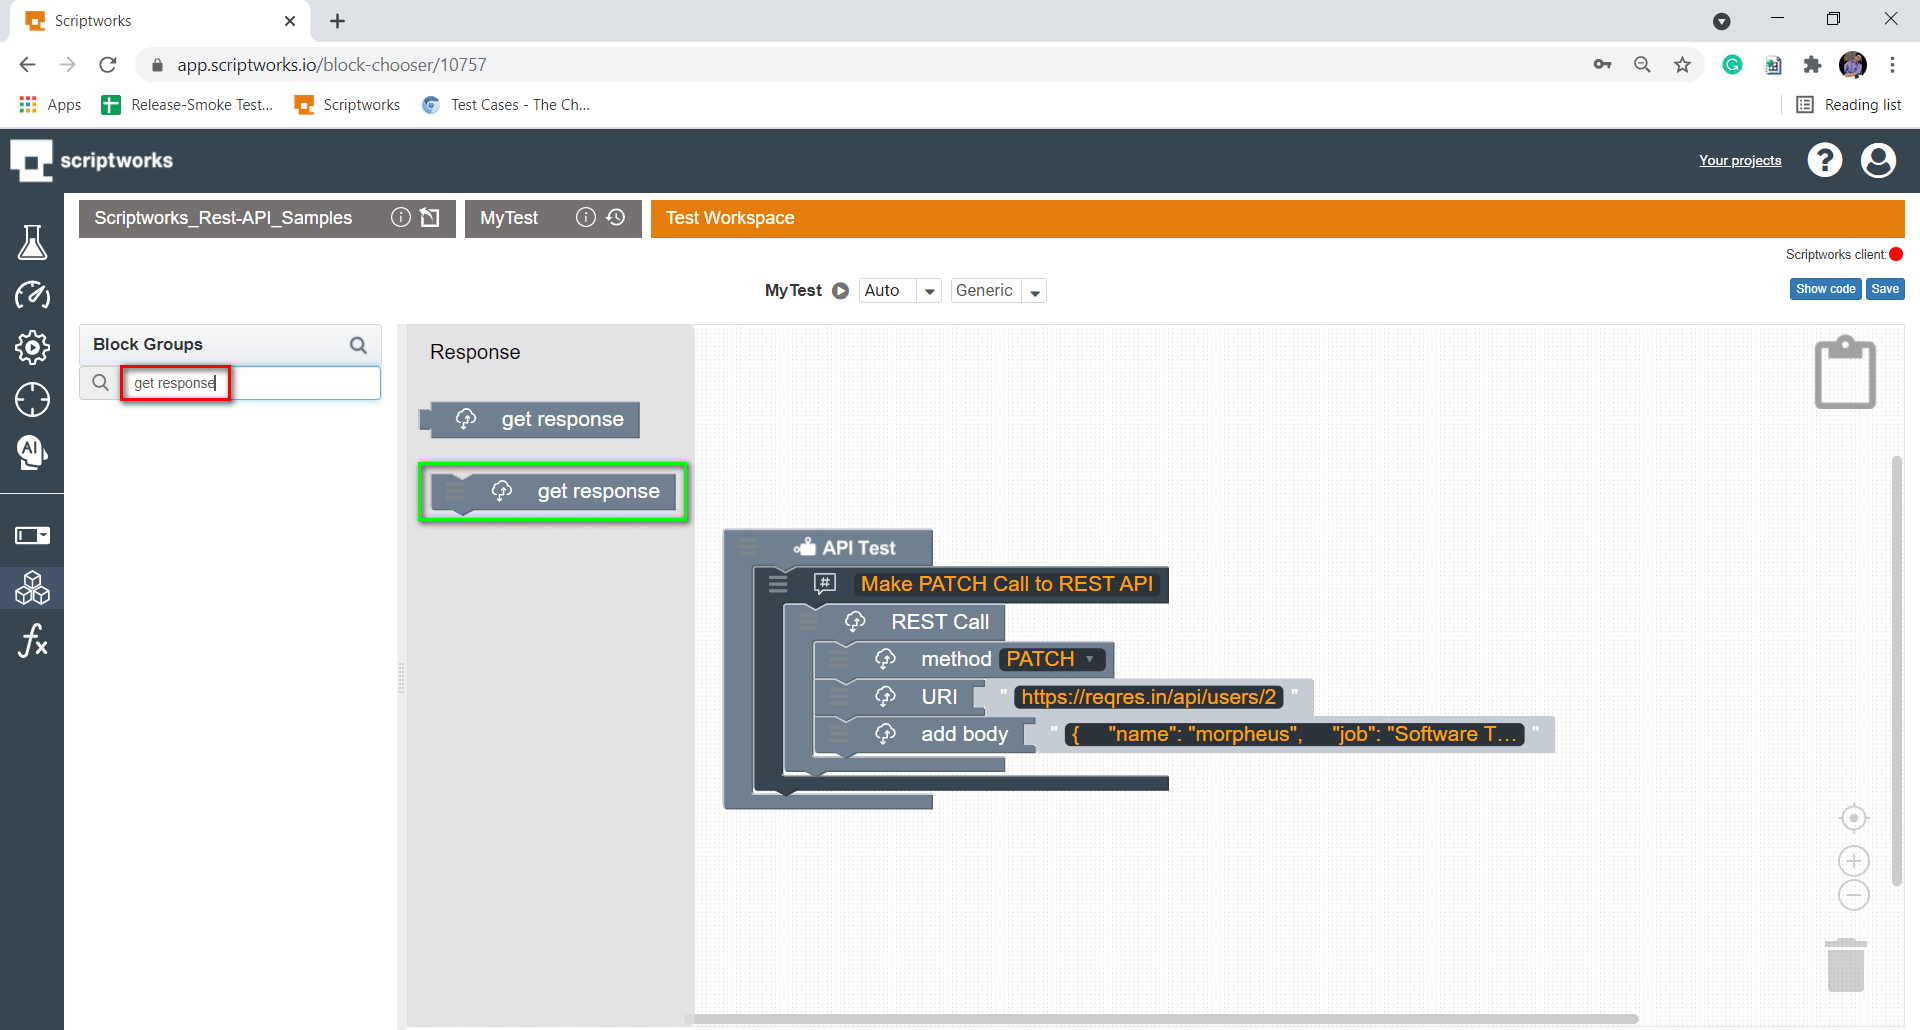 Search get Response from Search Box from left hand side panel